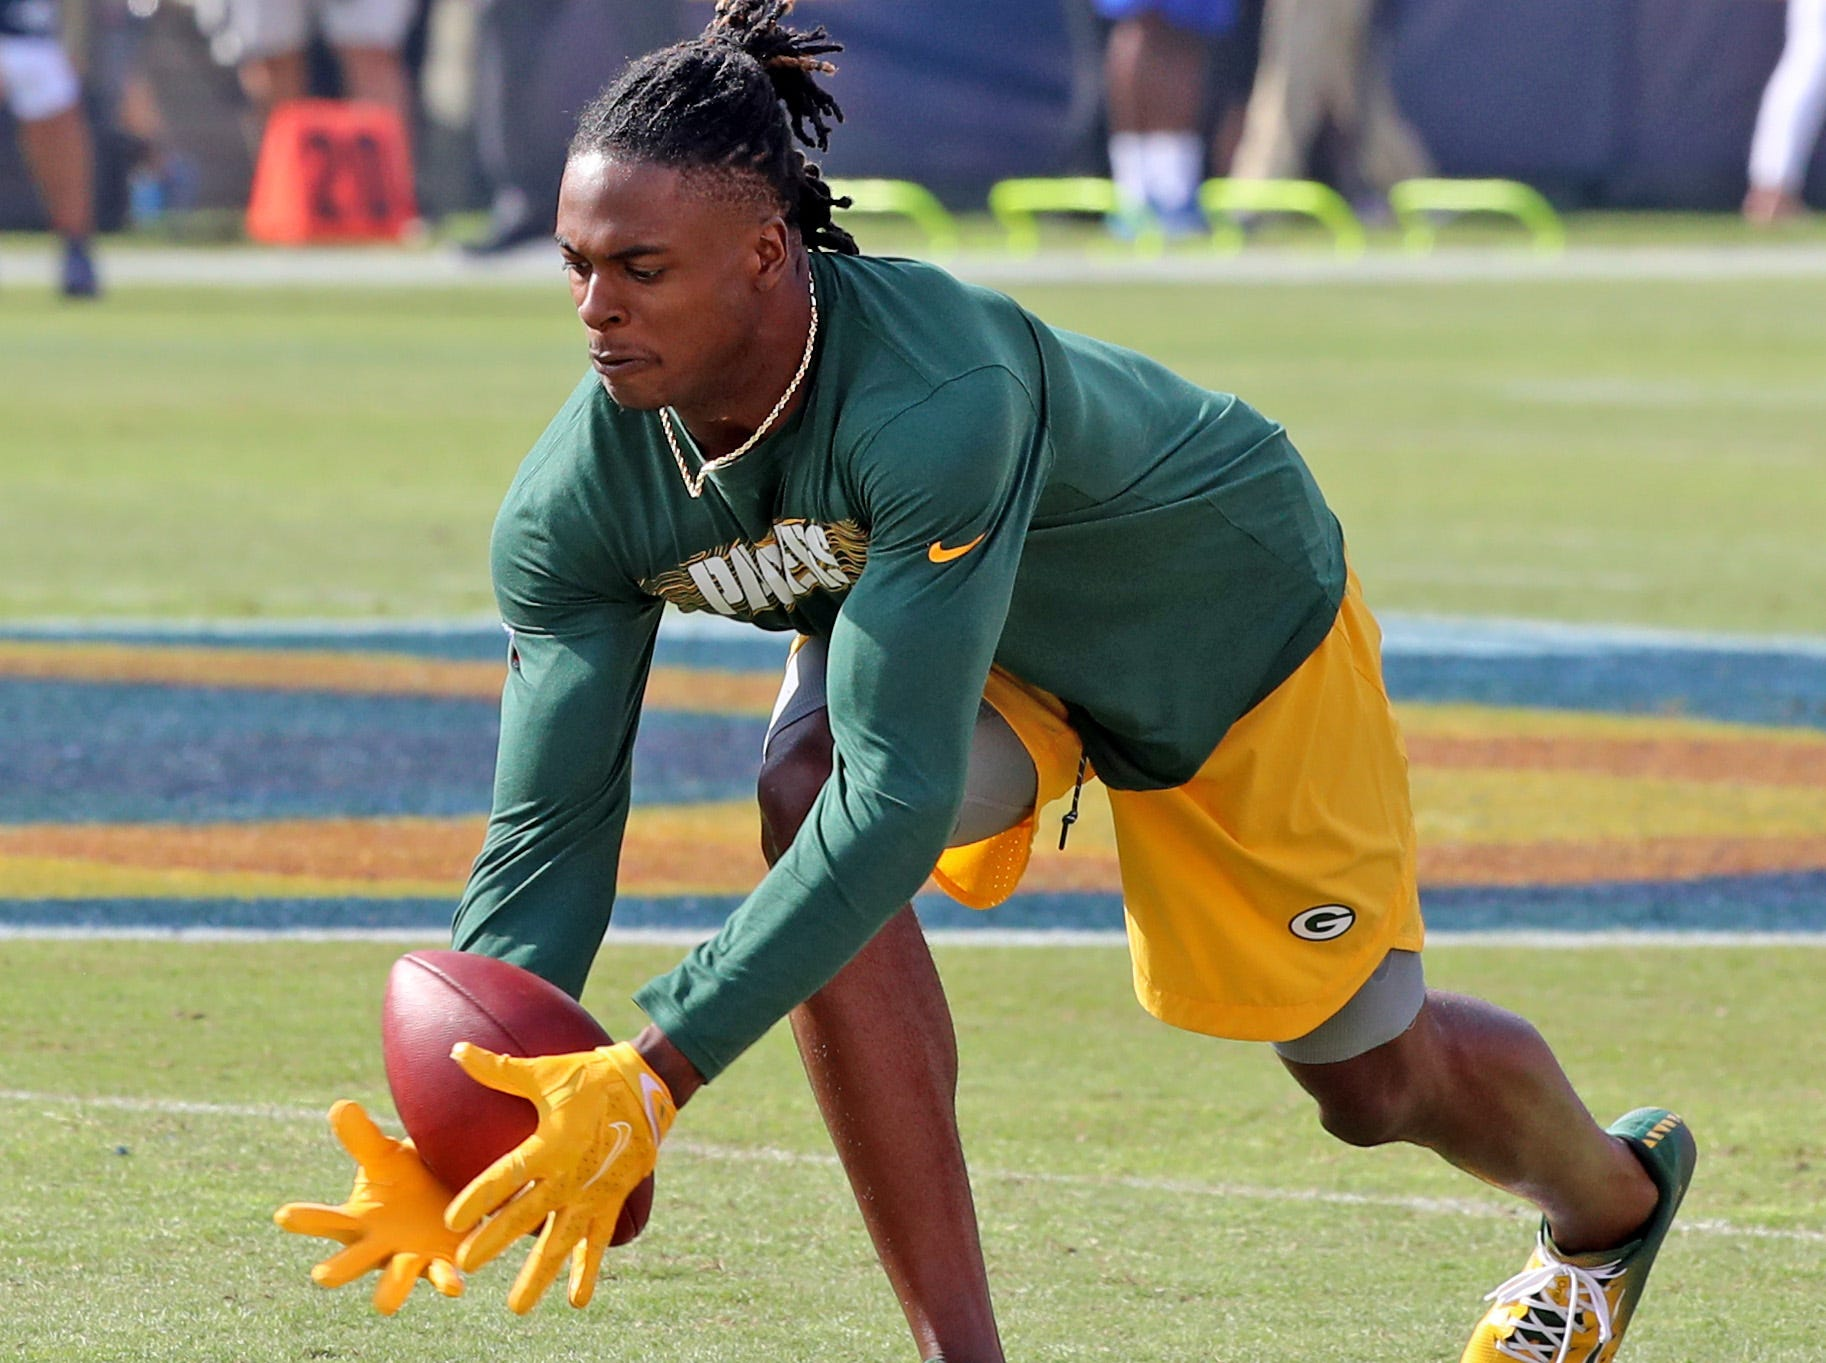 Davante Adams warms up before the game against the LA Rams Sunday, October 28, 2018 at the Memorial Coliseum in Los Angeles.